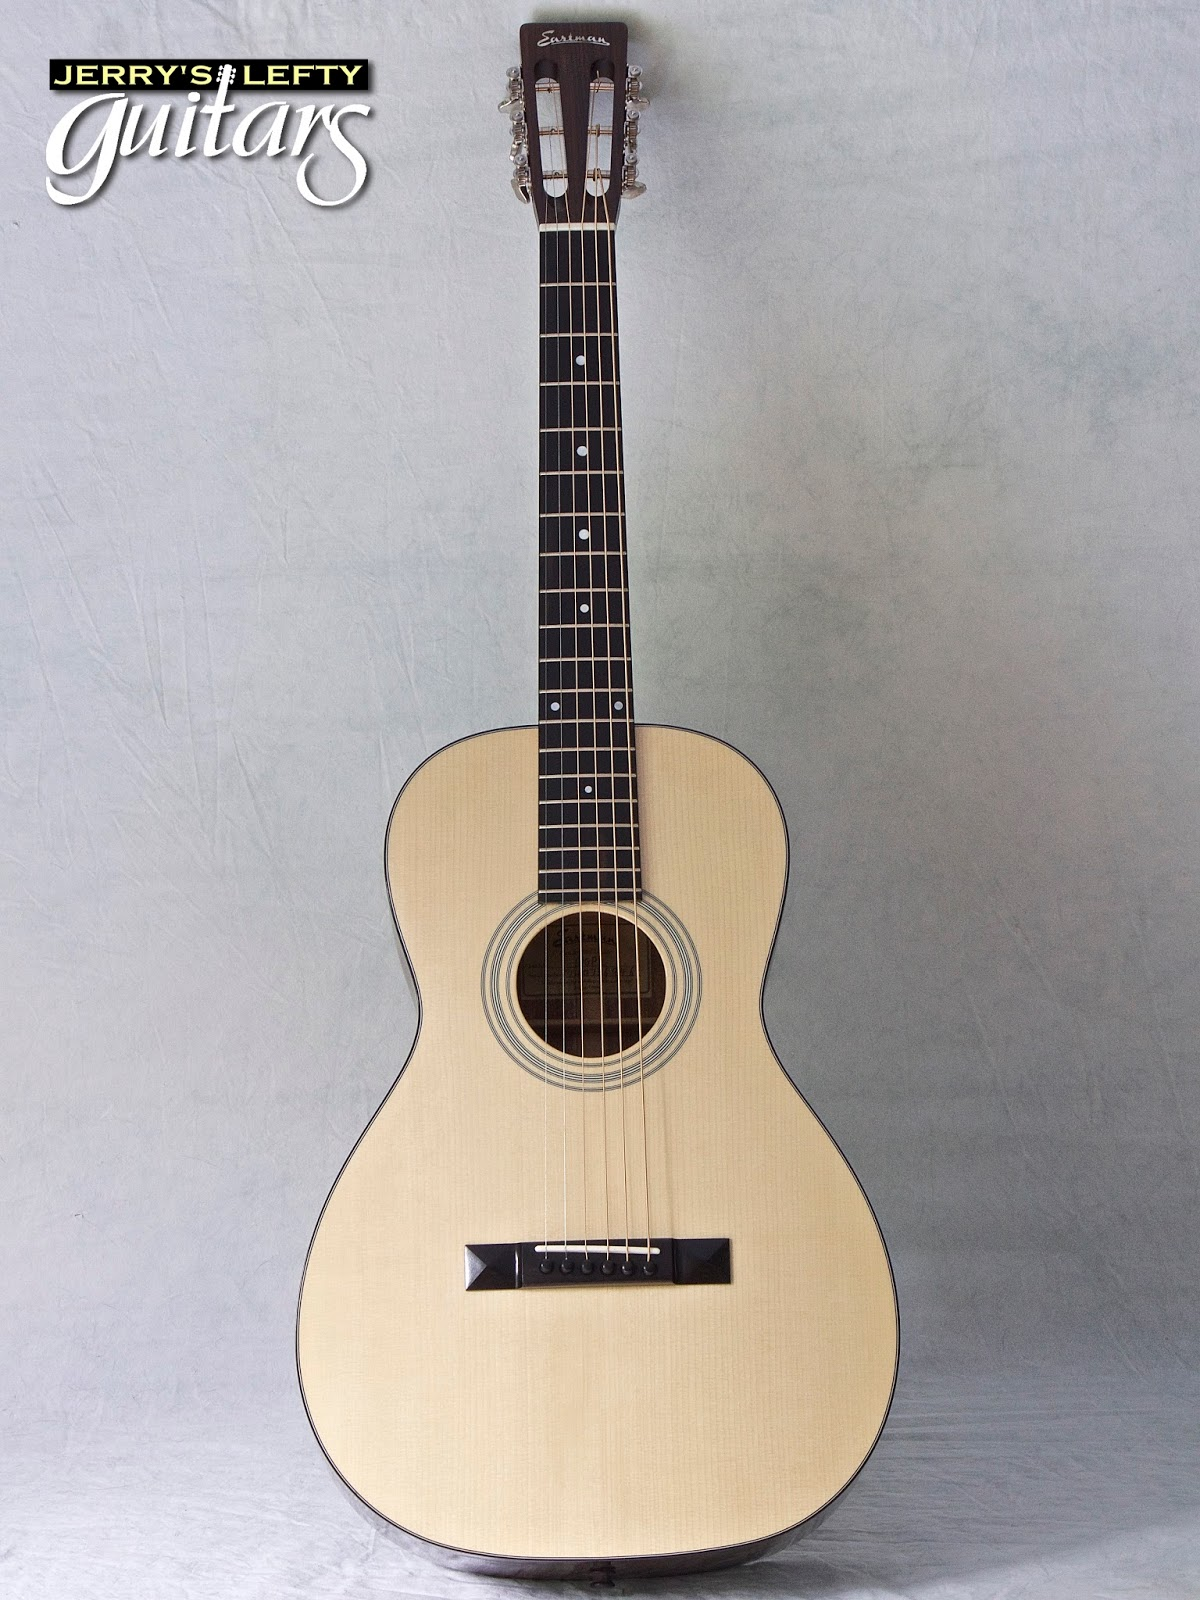 Jerry U0026 39 S Lefty Guitars Newest Guitar Arrivals  Updated Weekly   Eastman E10p Left Handed Parlor